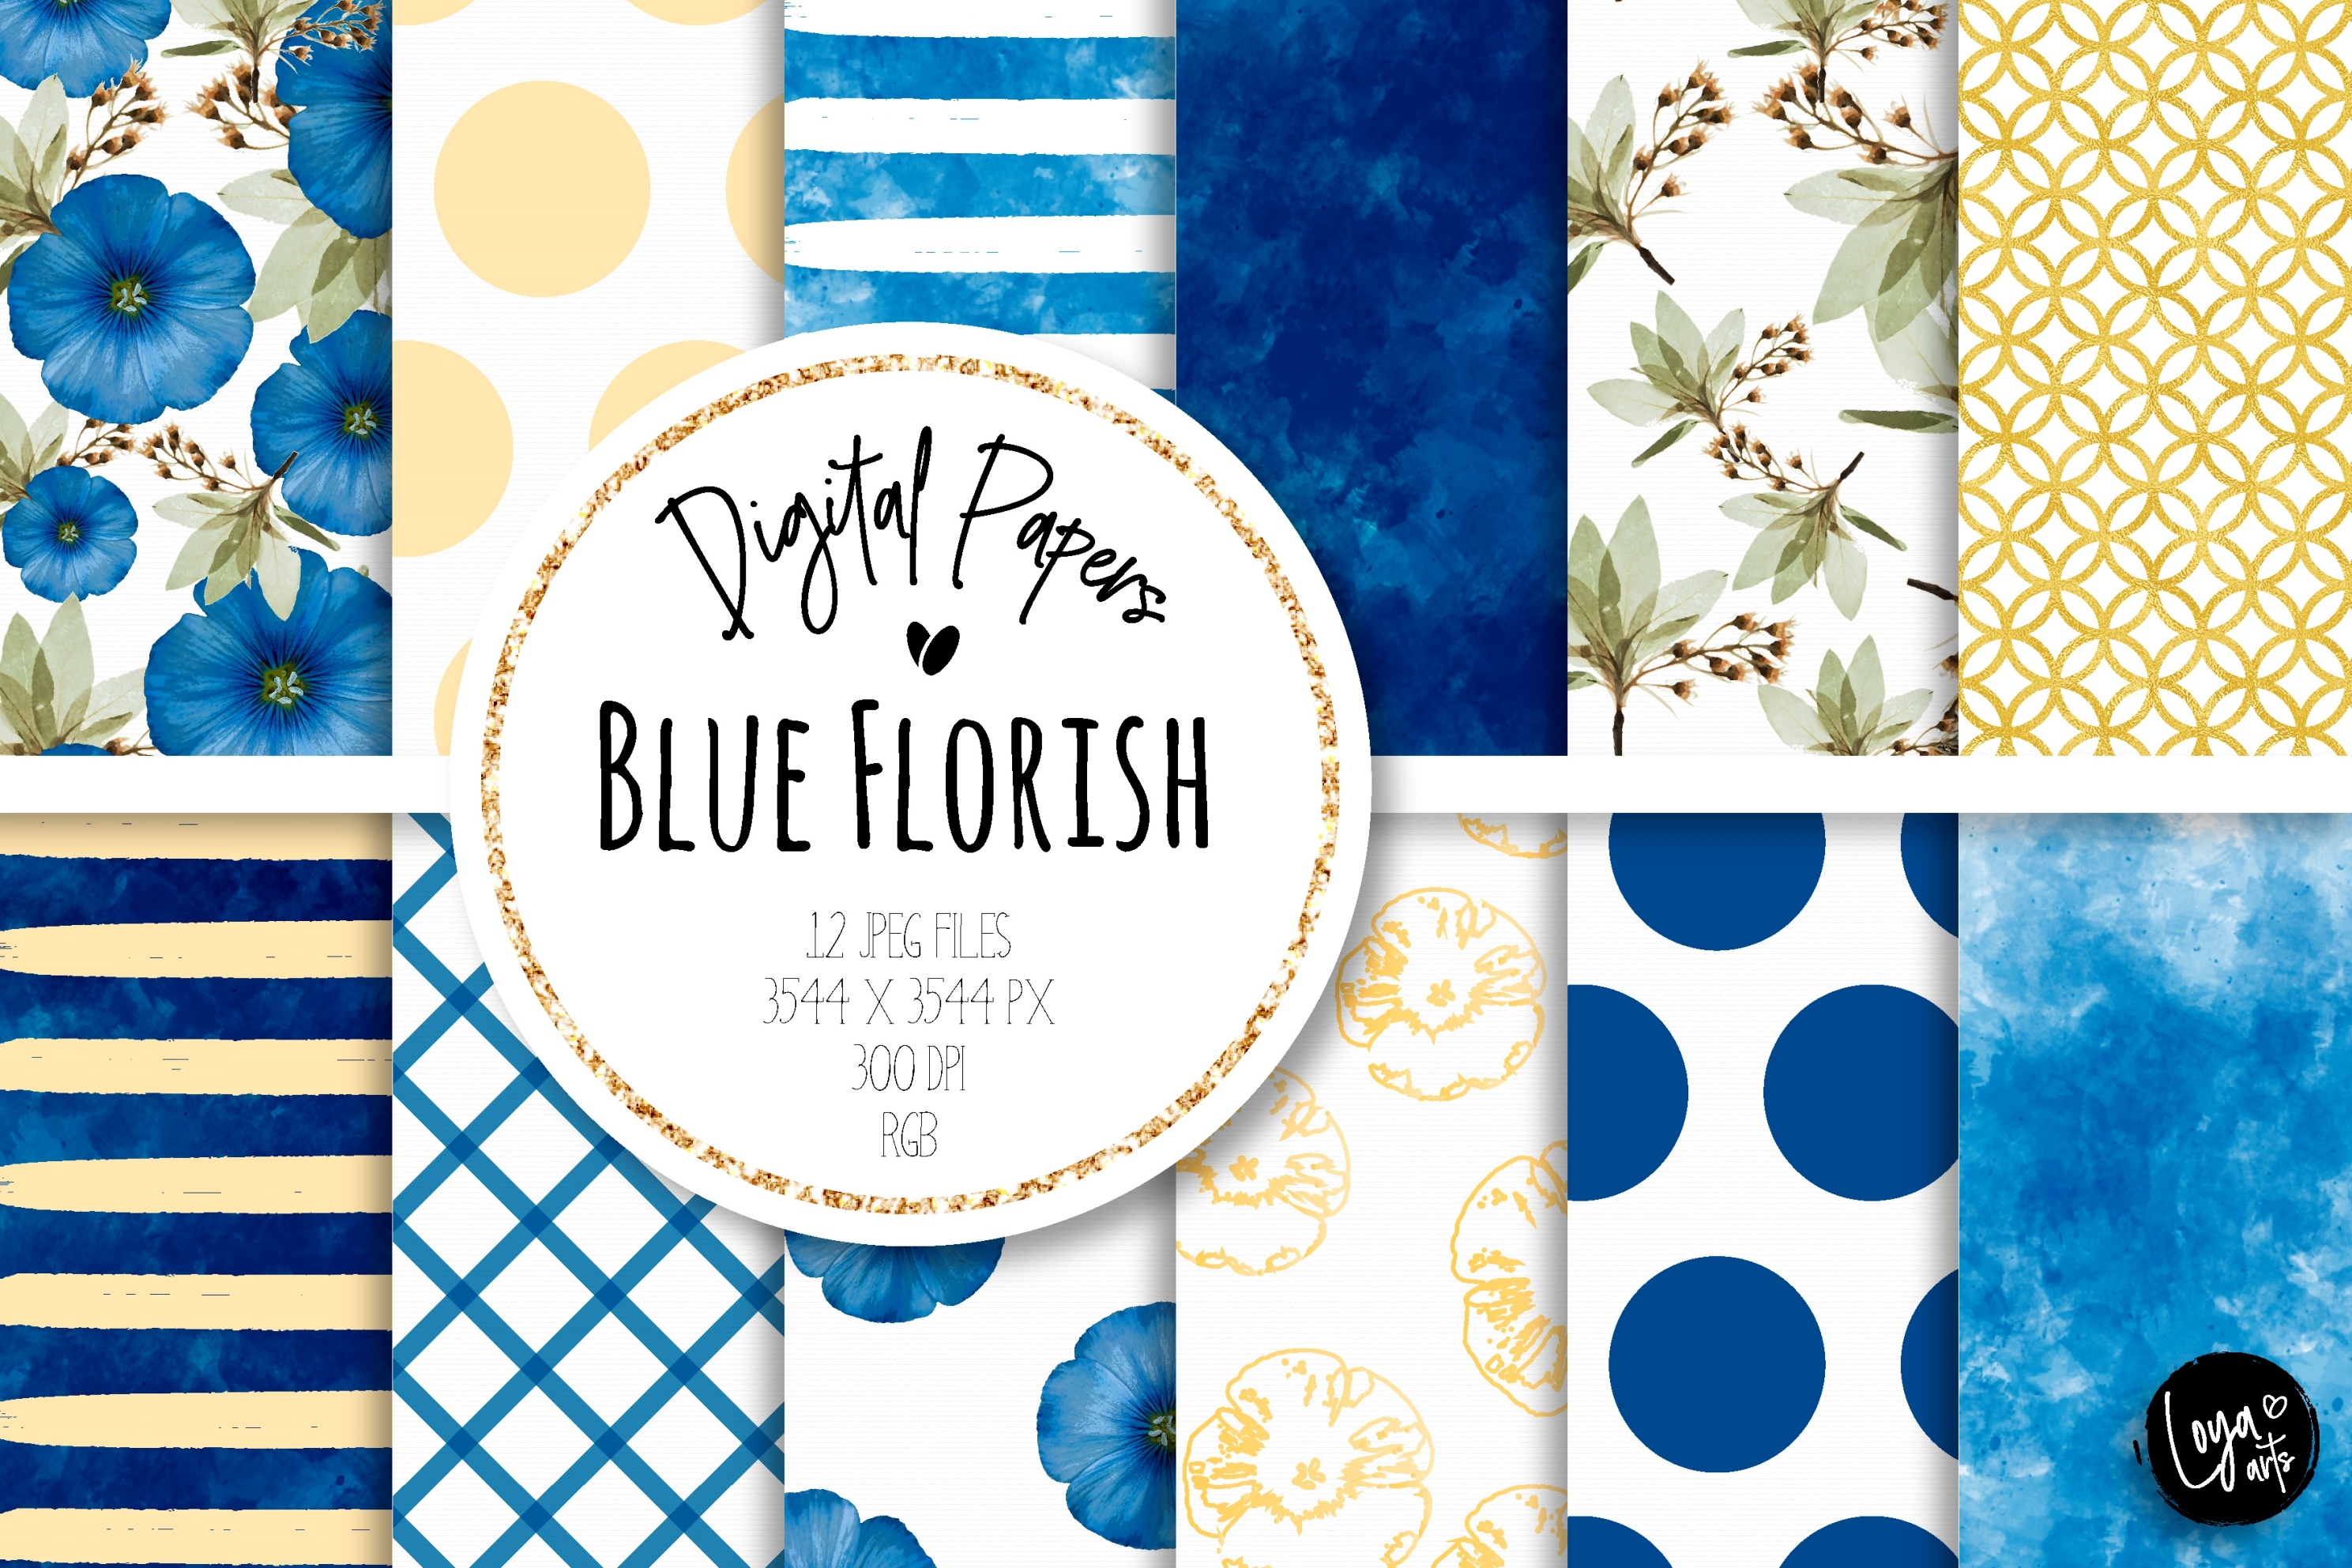 Download Free Blue Florish Digital Paper Set Graphic By Loyaarts Creative for Cricut Explore, Silhouette and other cutting machines.